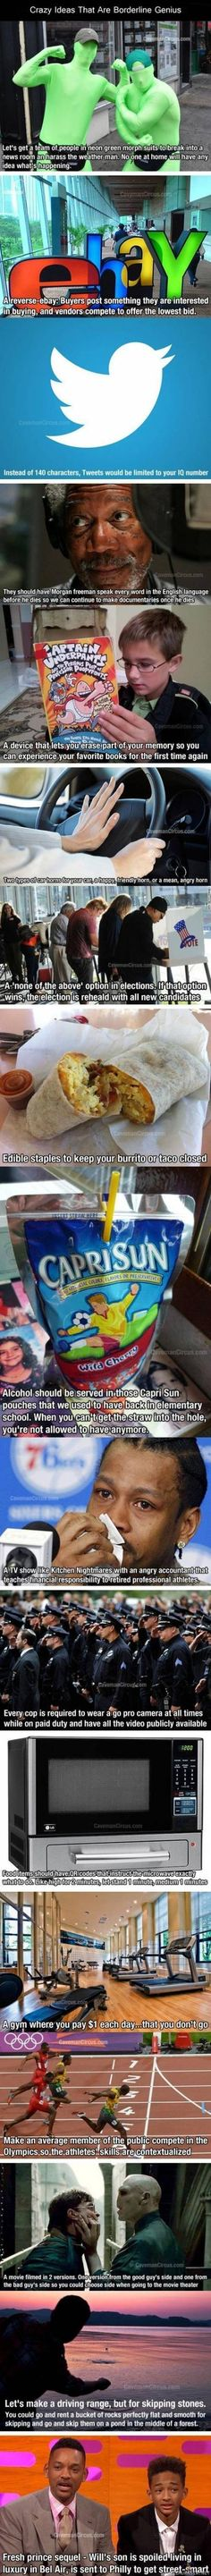 Some pretty funny ideas. I like the one about not being able to drink any more alcohol if you can't stick a straw in a Capri Sun pouch... :)